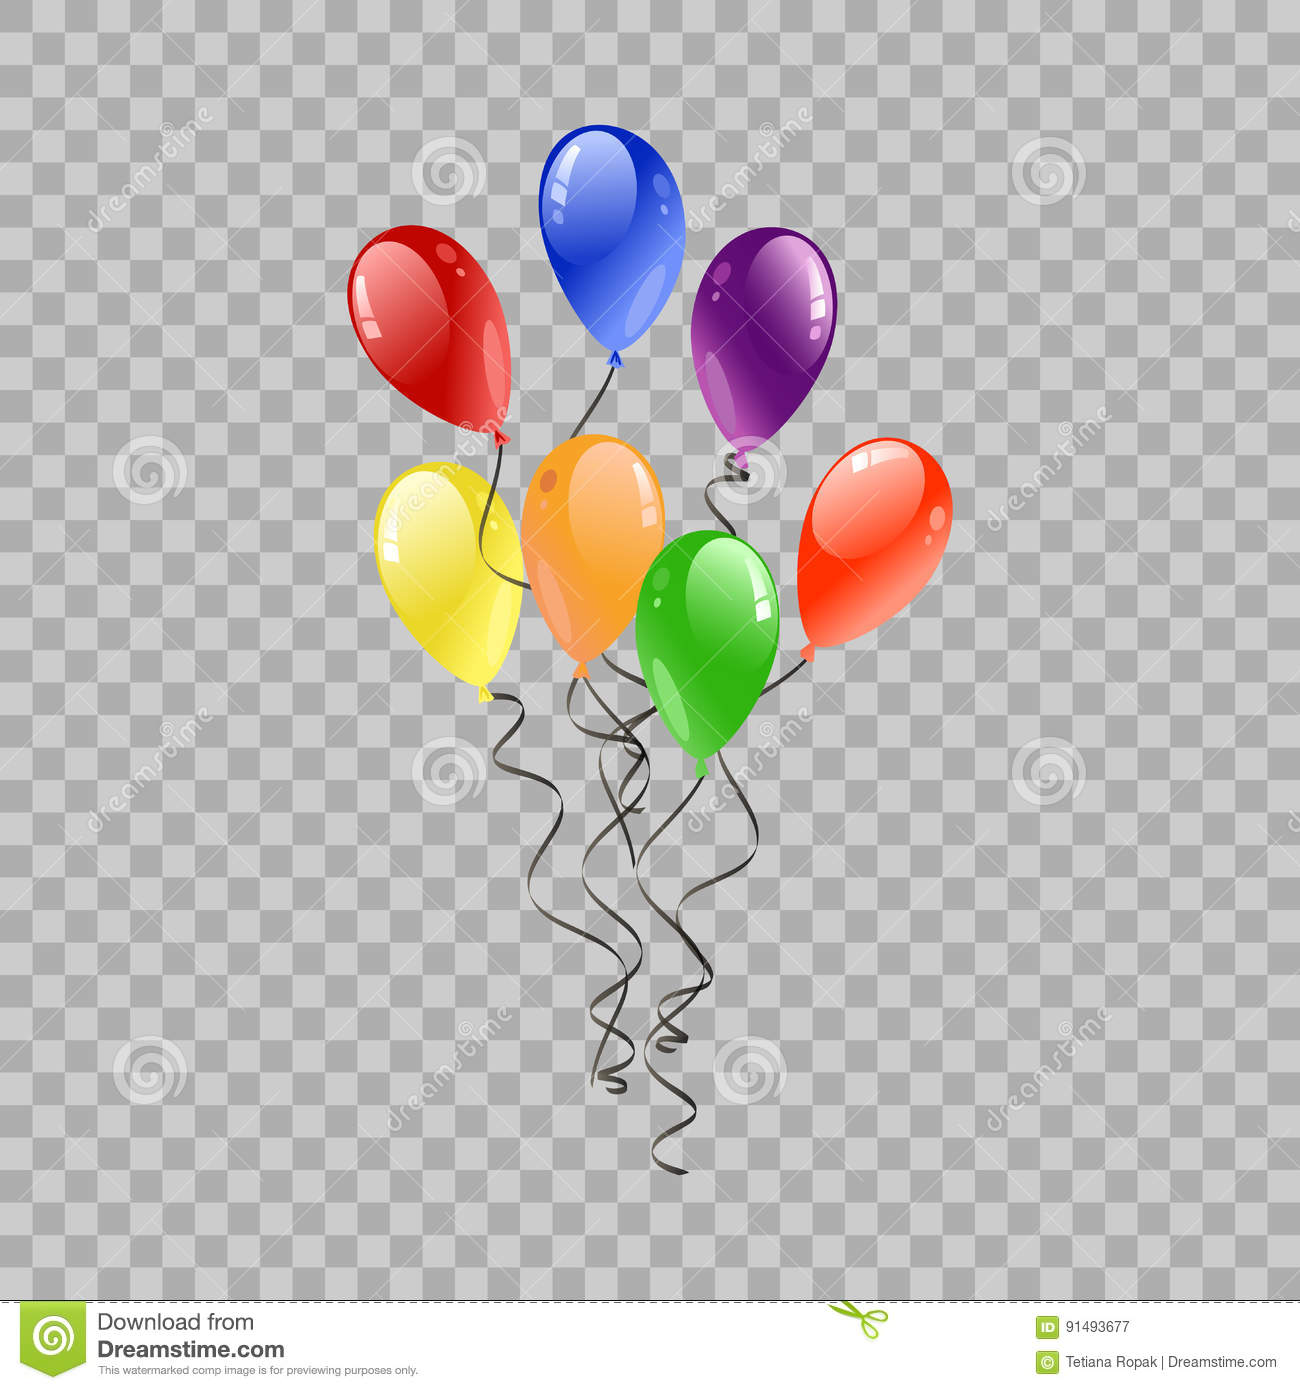 festive balloons flying for party and celebrations on transparent